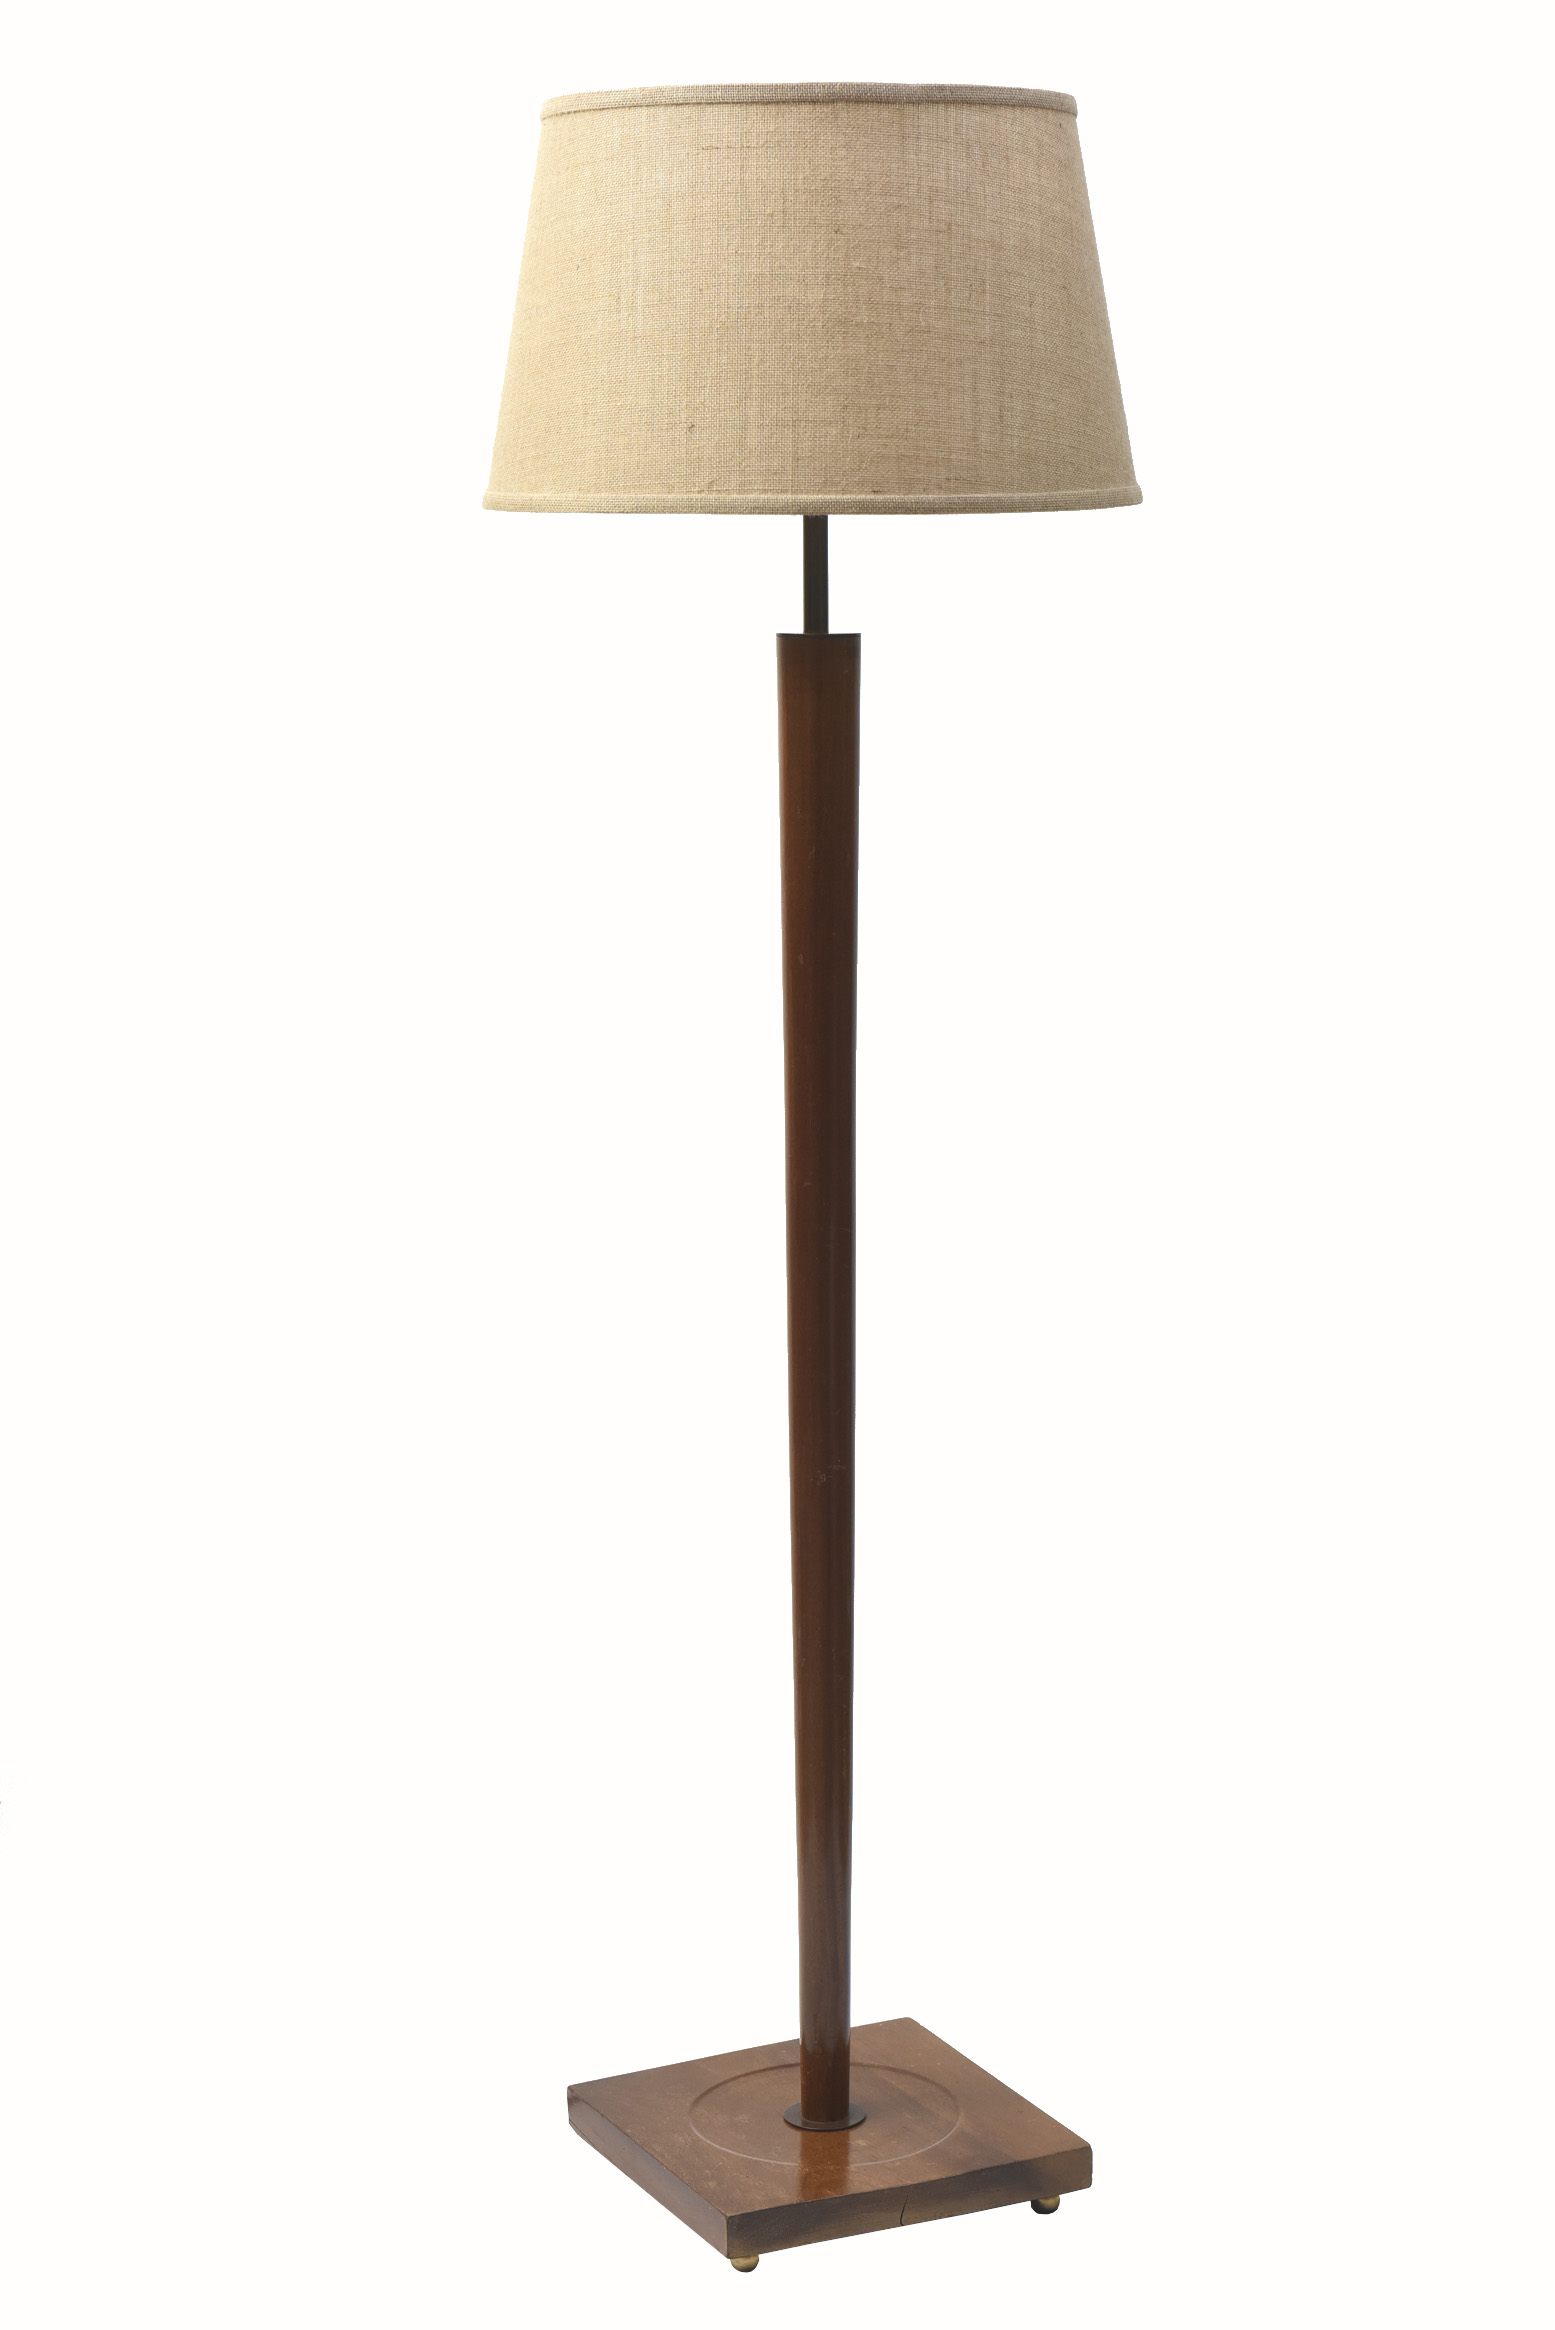 Mid Century Wooden Floor Lamp Appleton Antique Lighting